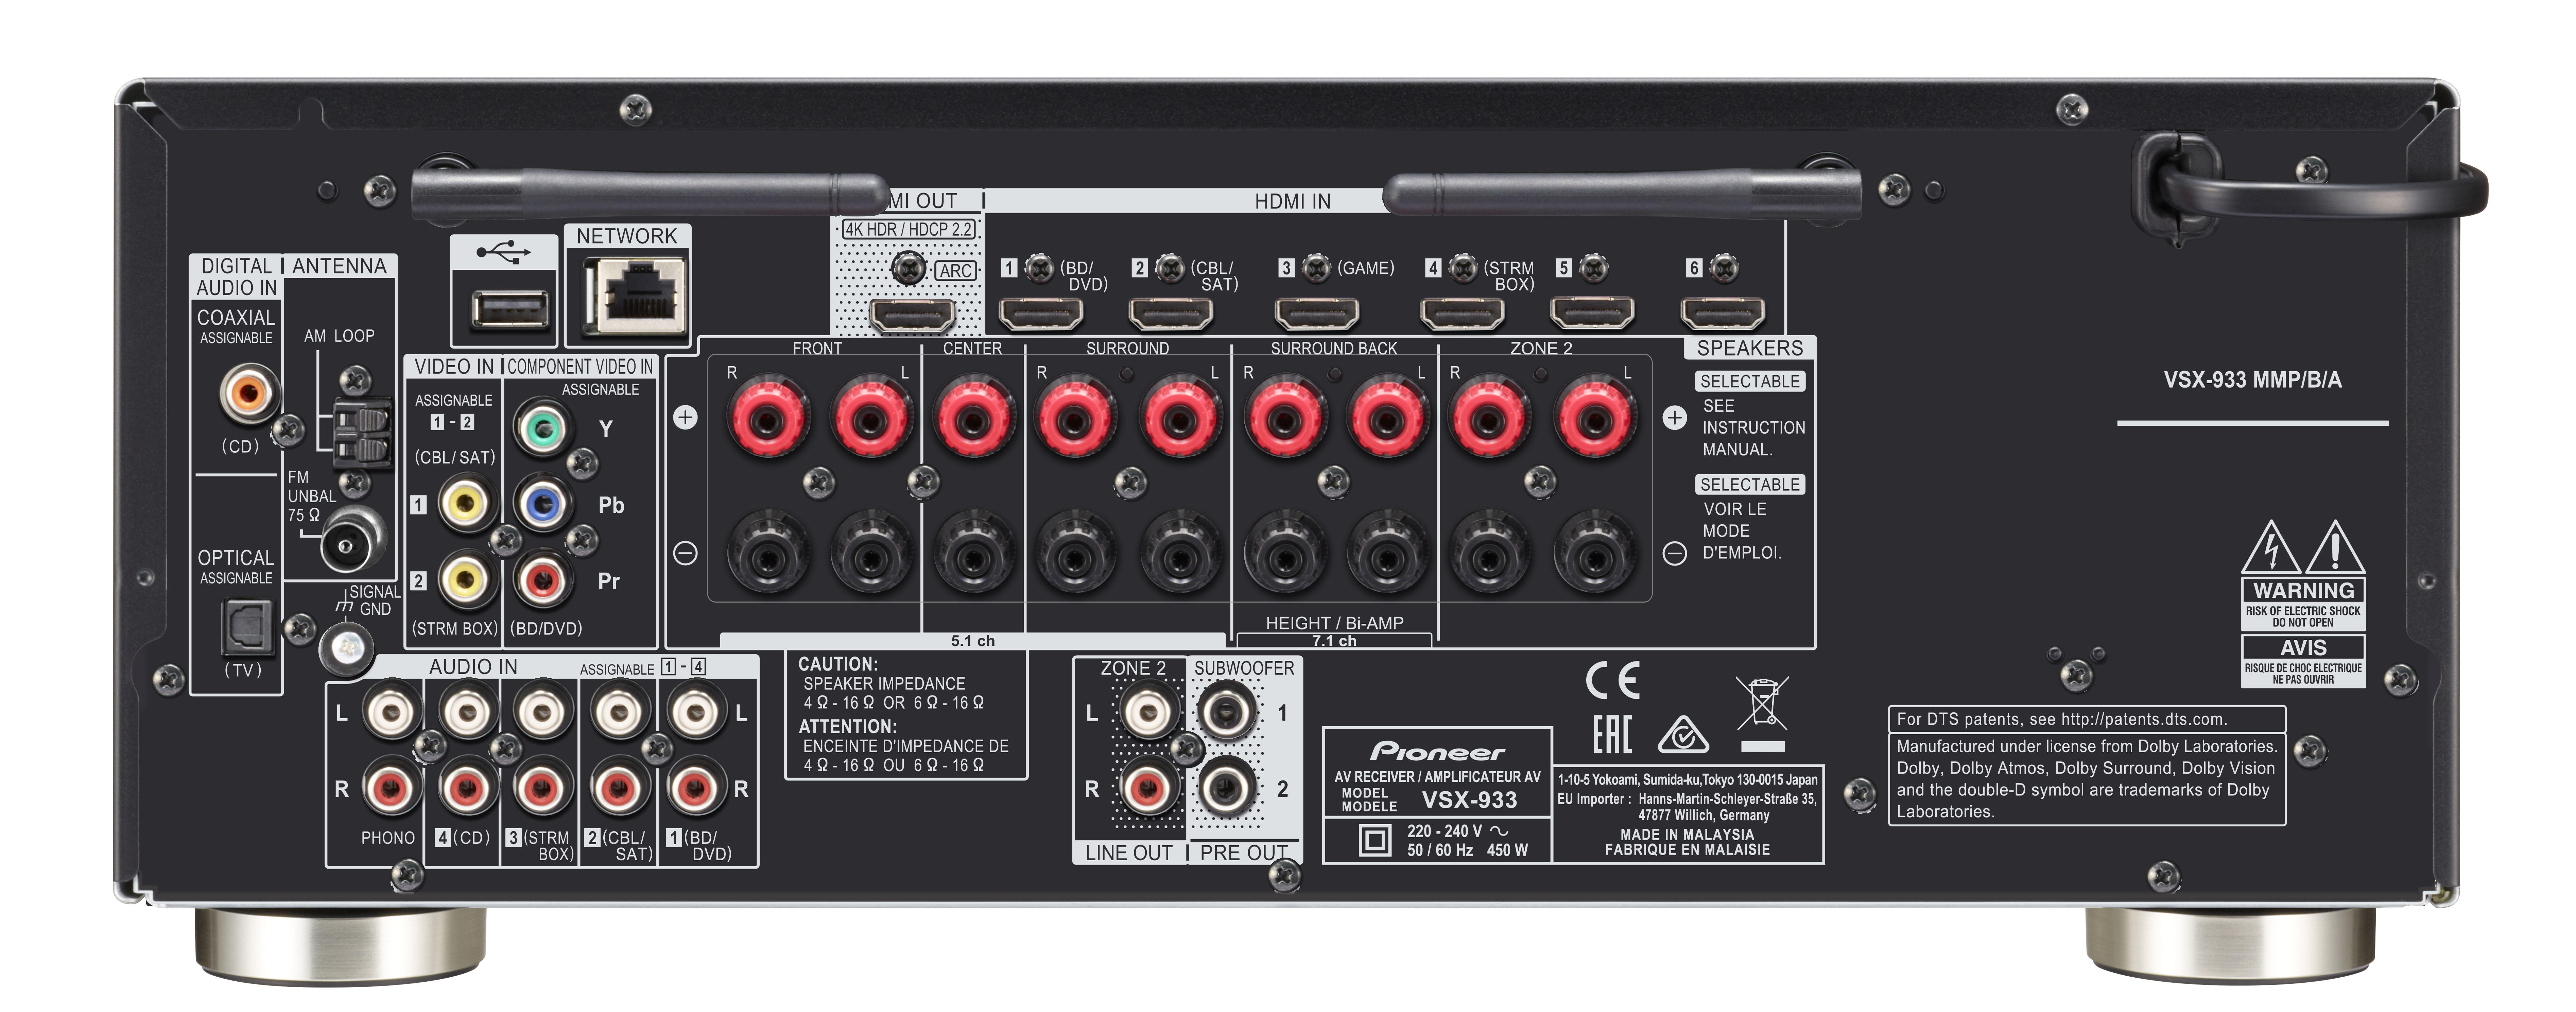 Pioneer Av Receiver >> VSX-933 | AV Receivers | Products | Pioneer Home Audio Visual